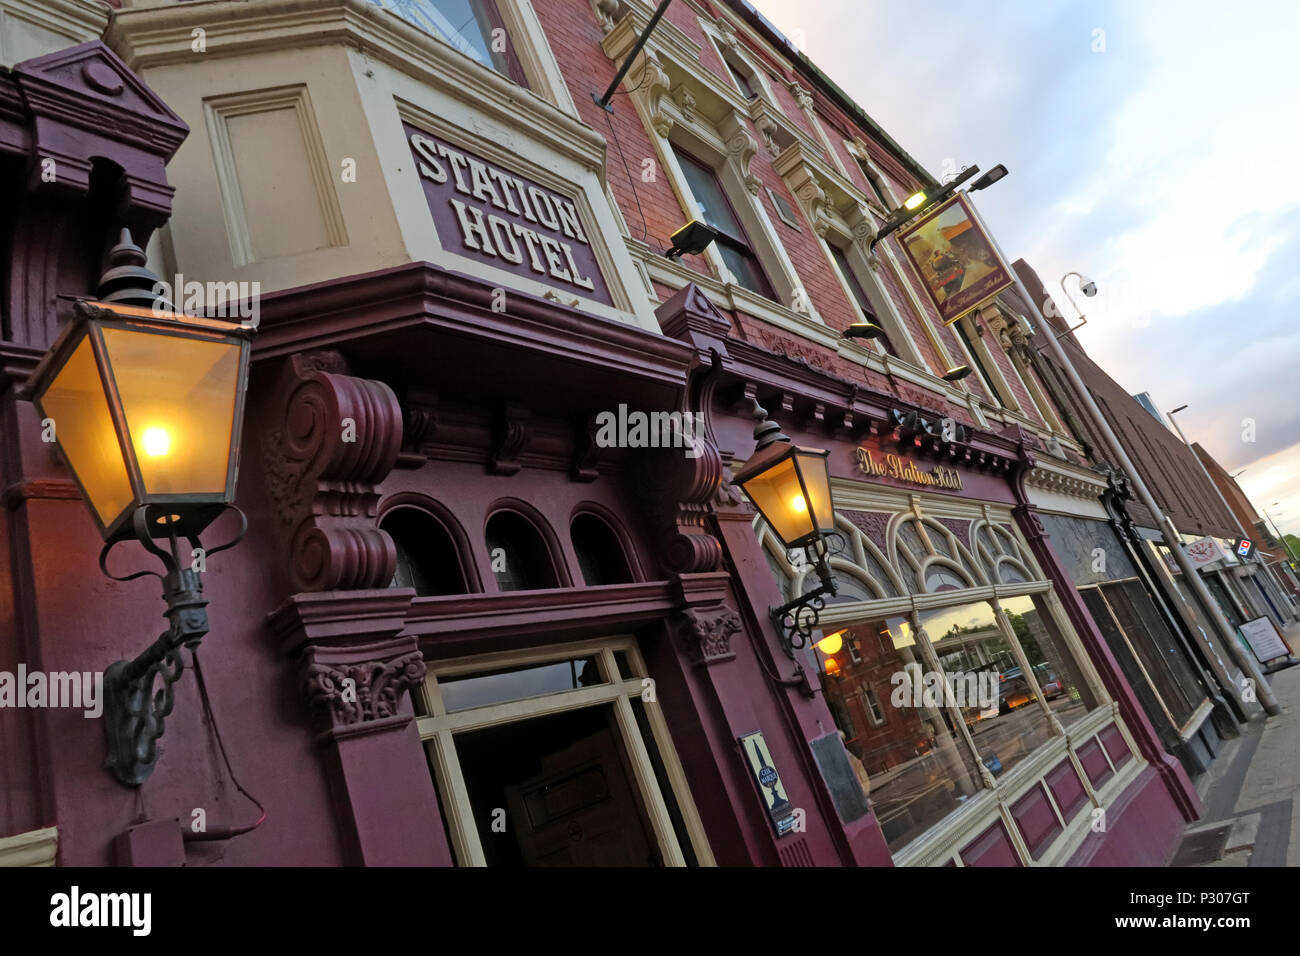 Station Hotel Pub, Altrincham, Trafford, Greater Manchester, North West England, UK - Stock Image